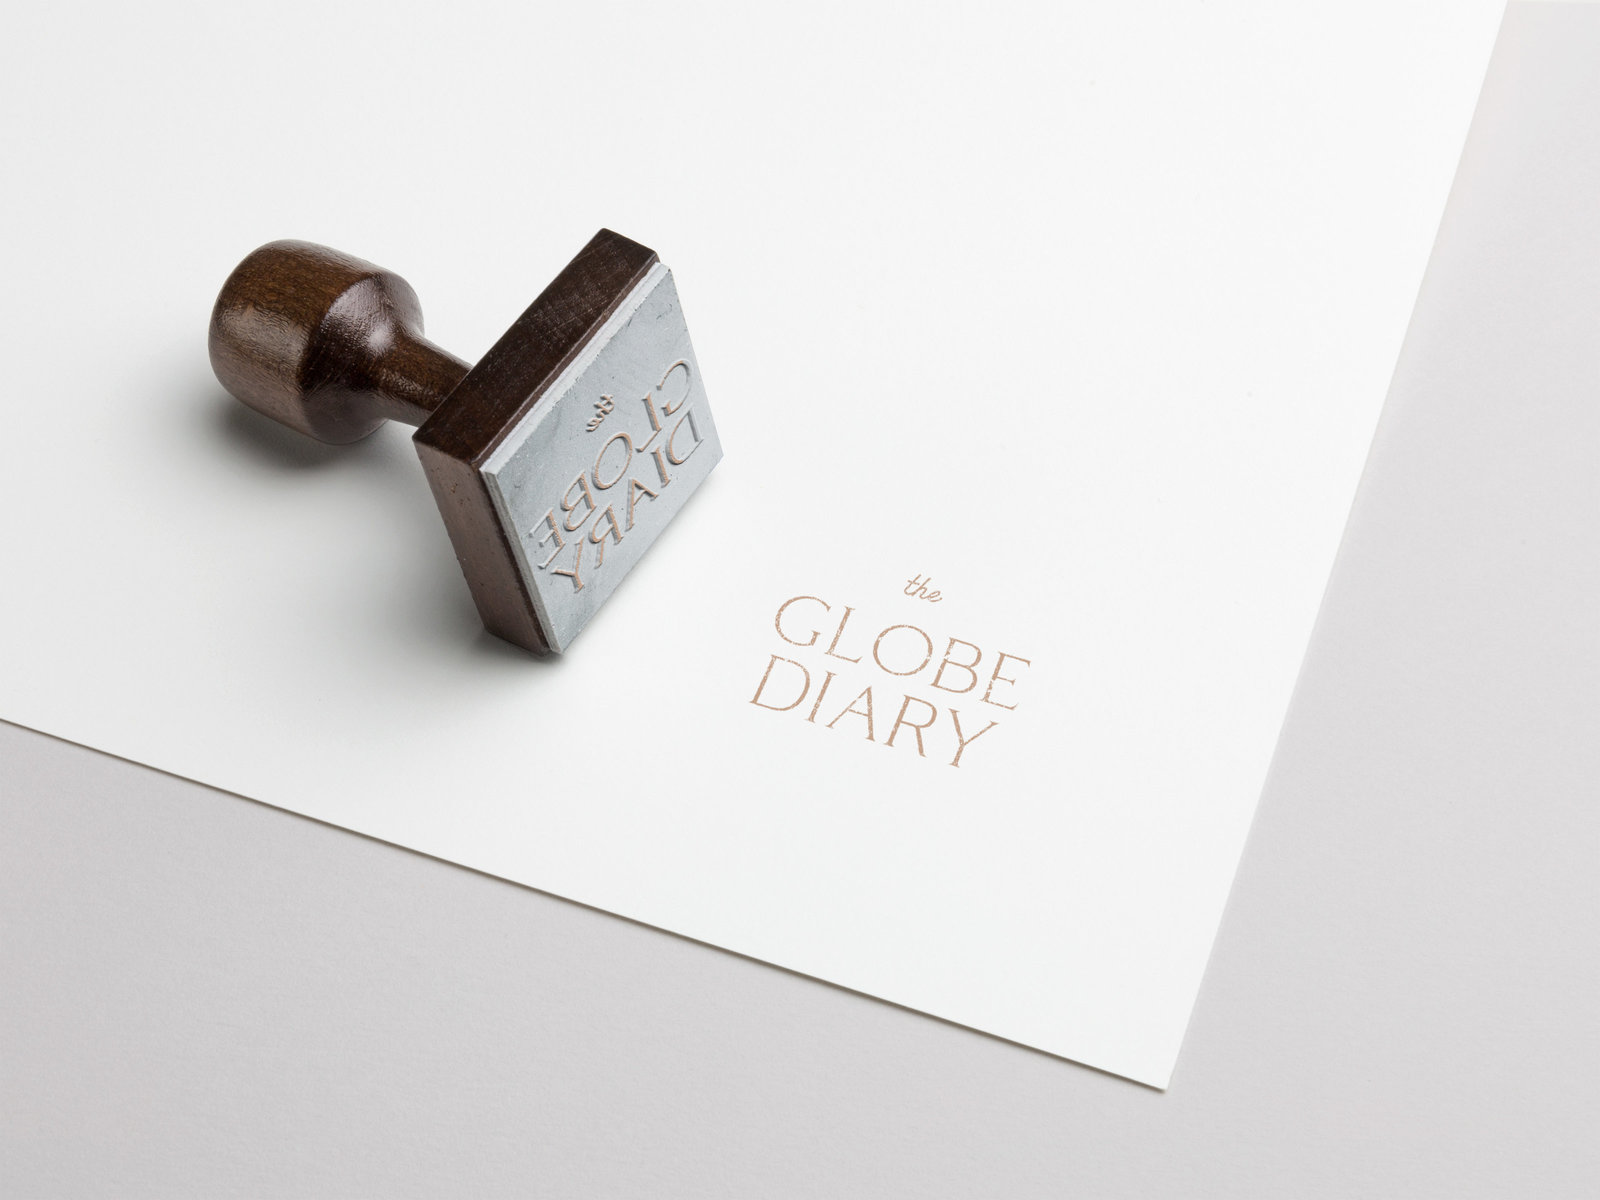 The Globe Diary by Leigh Dorkin - Custom Brand and Showit Web Design by With Grace and Gold - Showit Theme, Showit Themes, Showit Template, Showit Templates, Showit Design, Showit Designer - 11